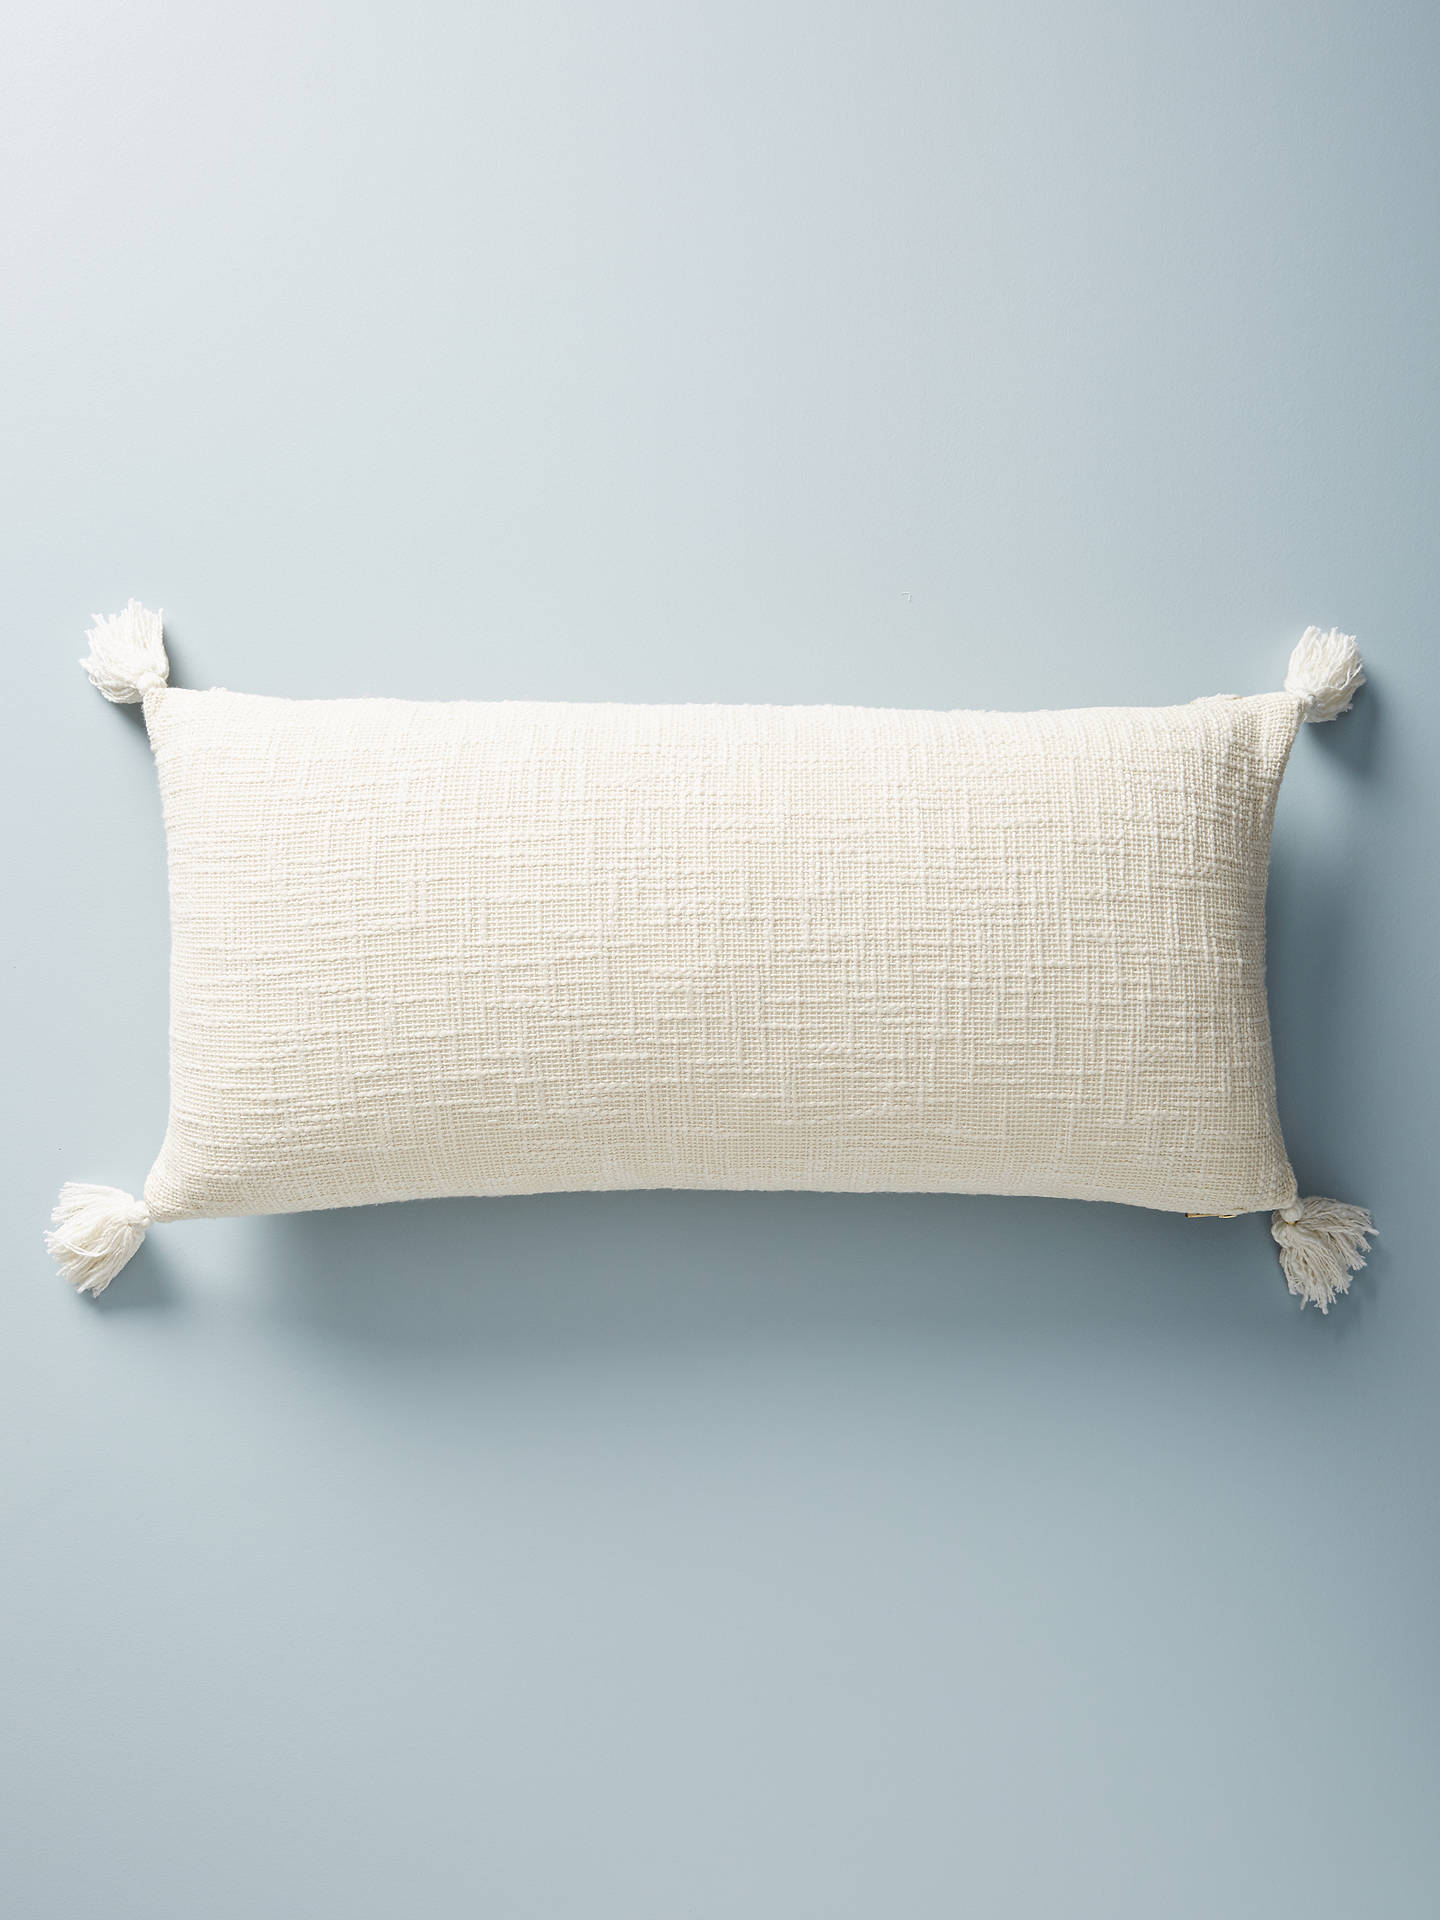 BuyAnthropologie Ryleigh Embroidered Rectangular Cushion, Ivory Online at johnlewis.com